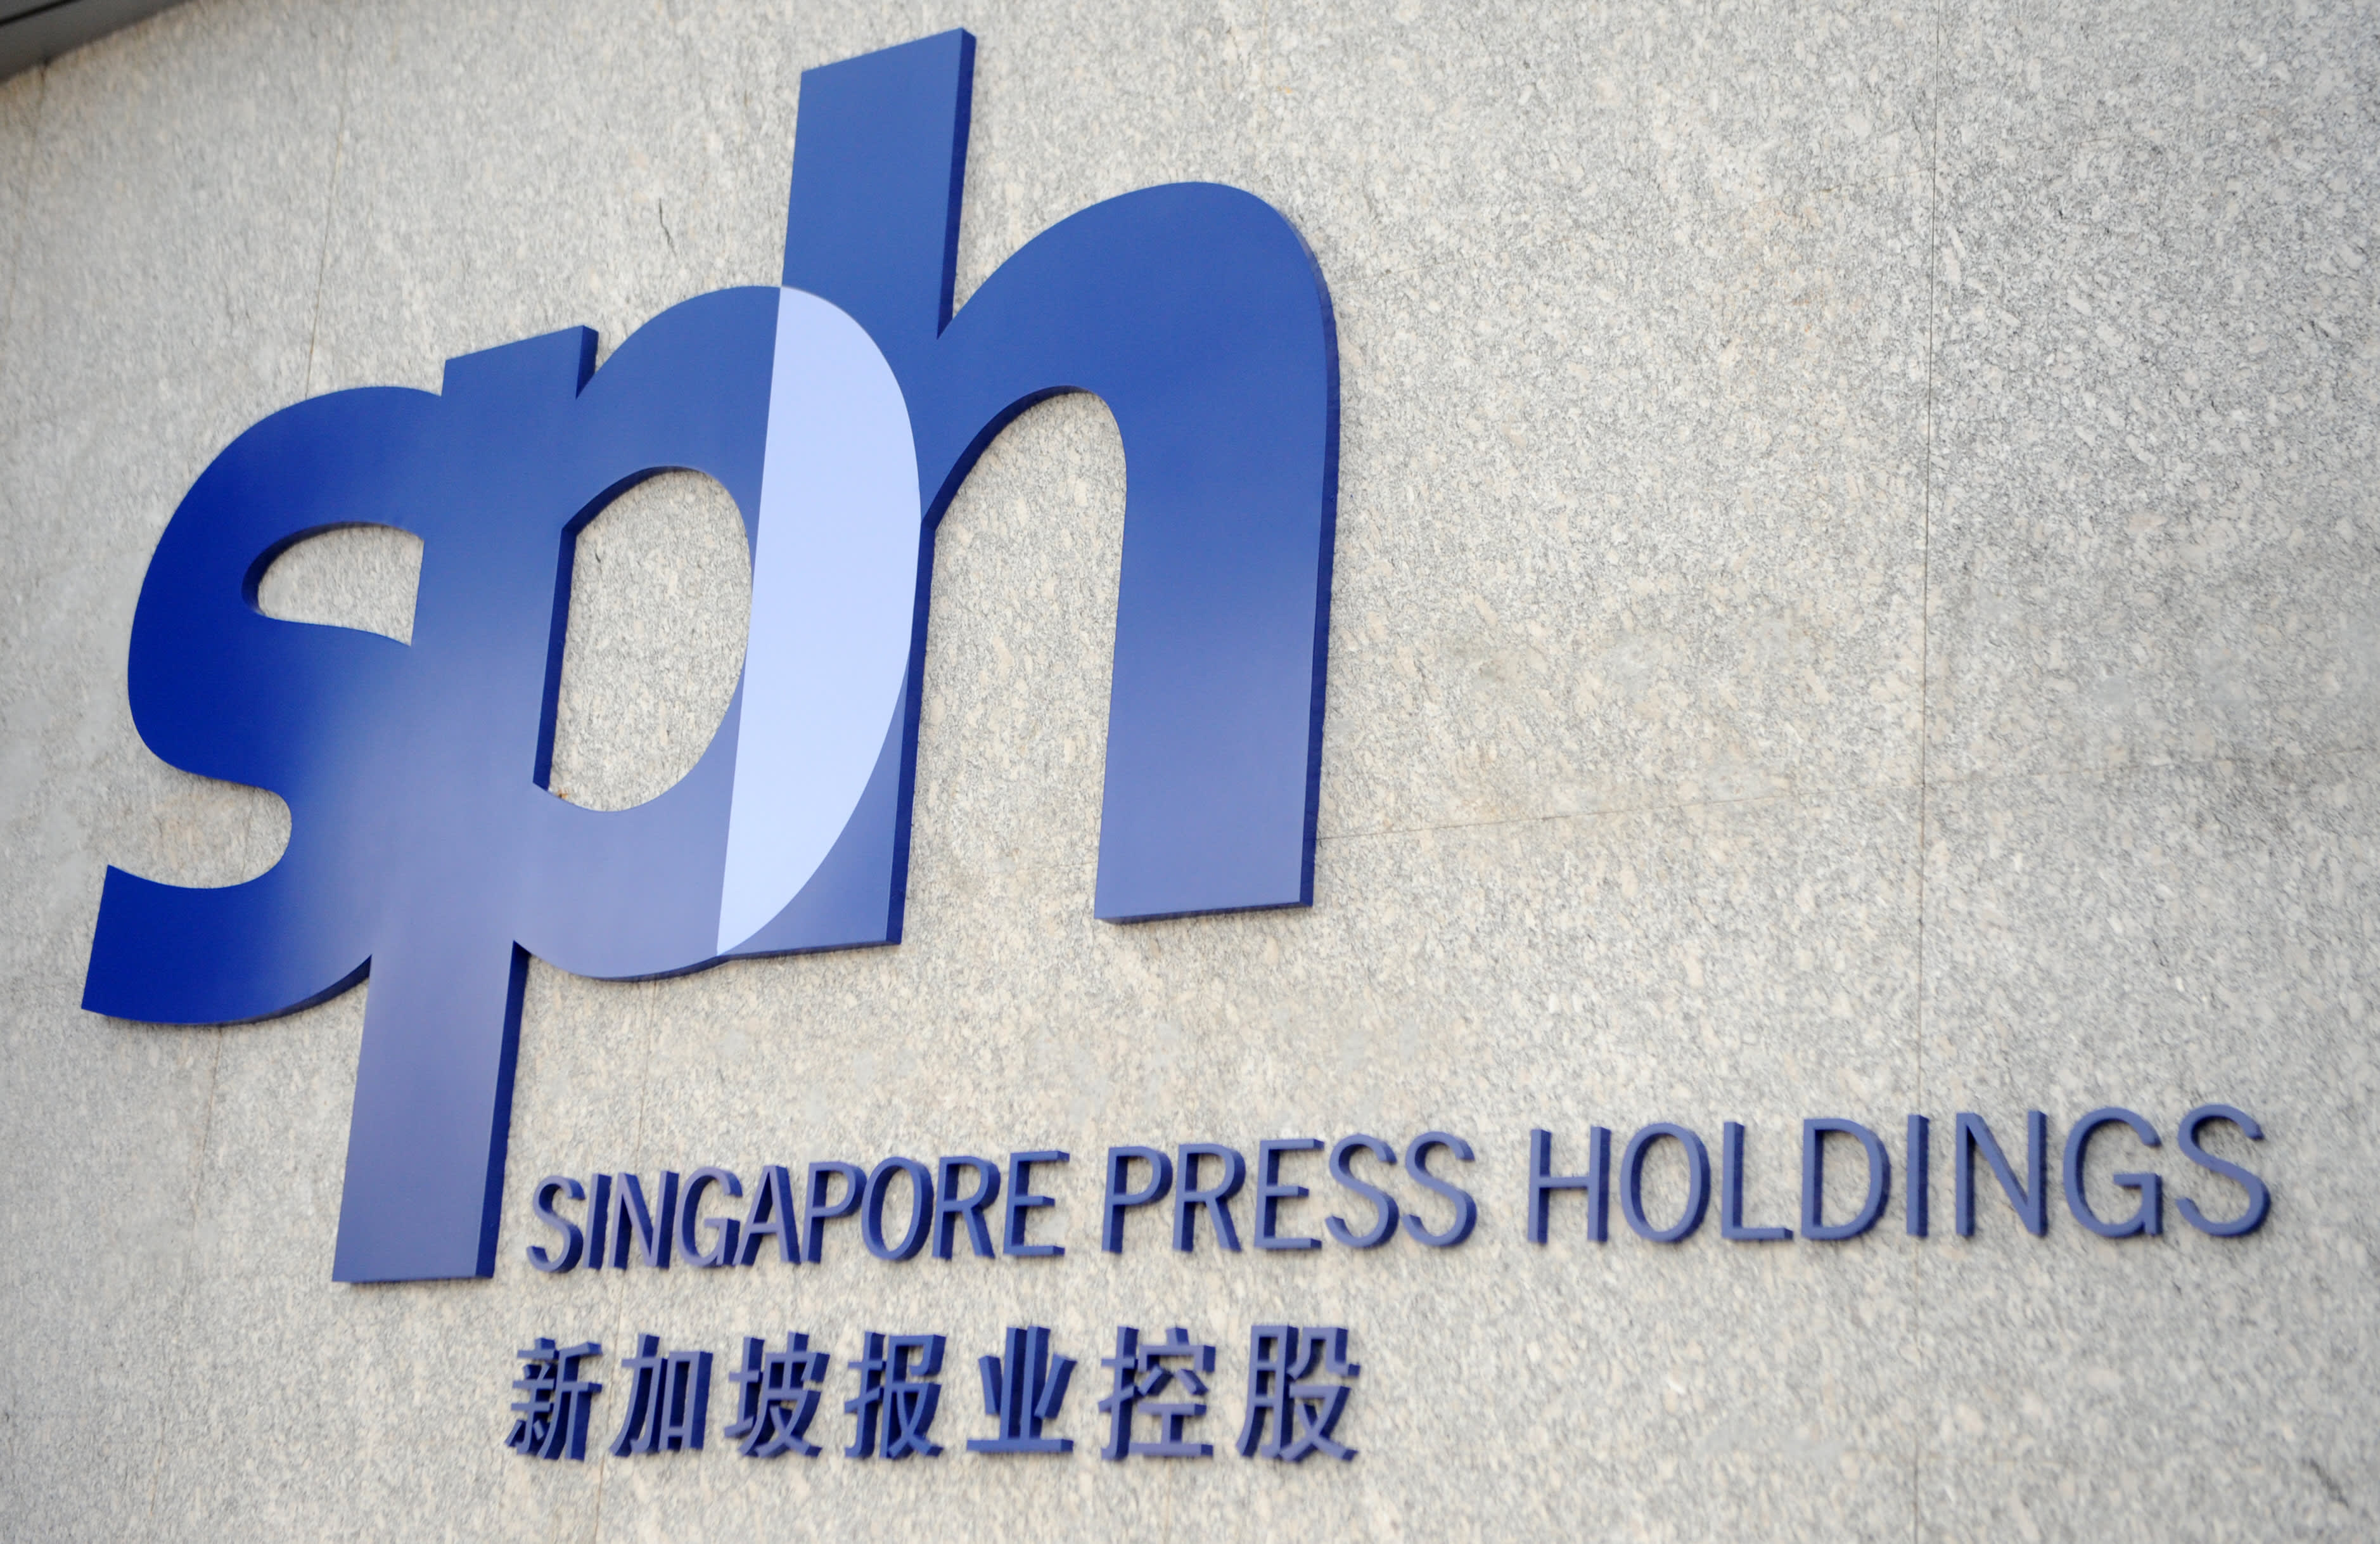 Newspaper publisher Singapore Press Holdings to spin off troubled media business